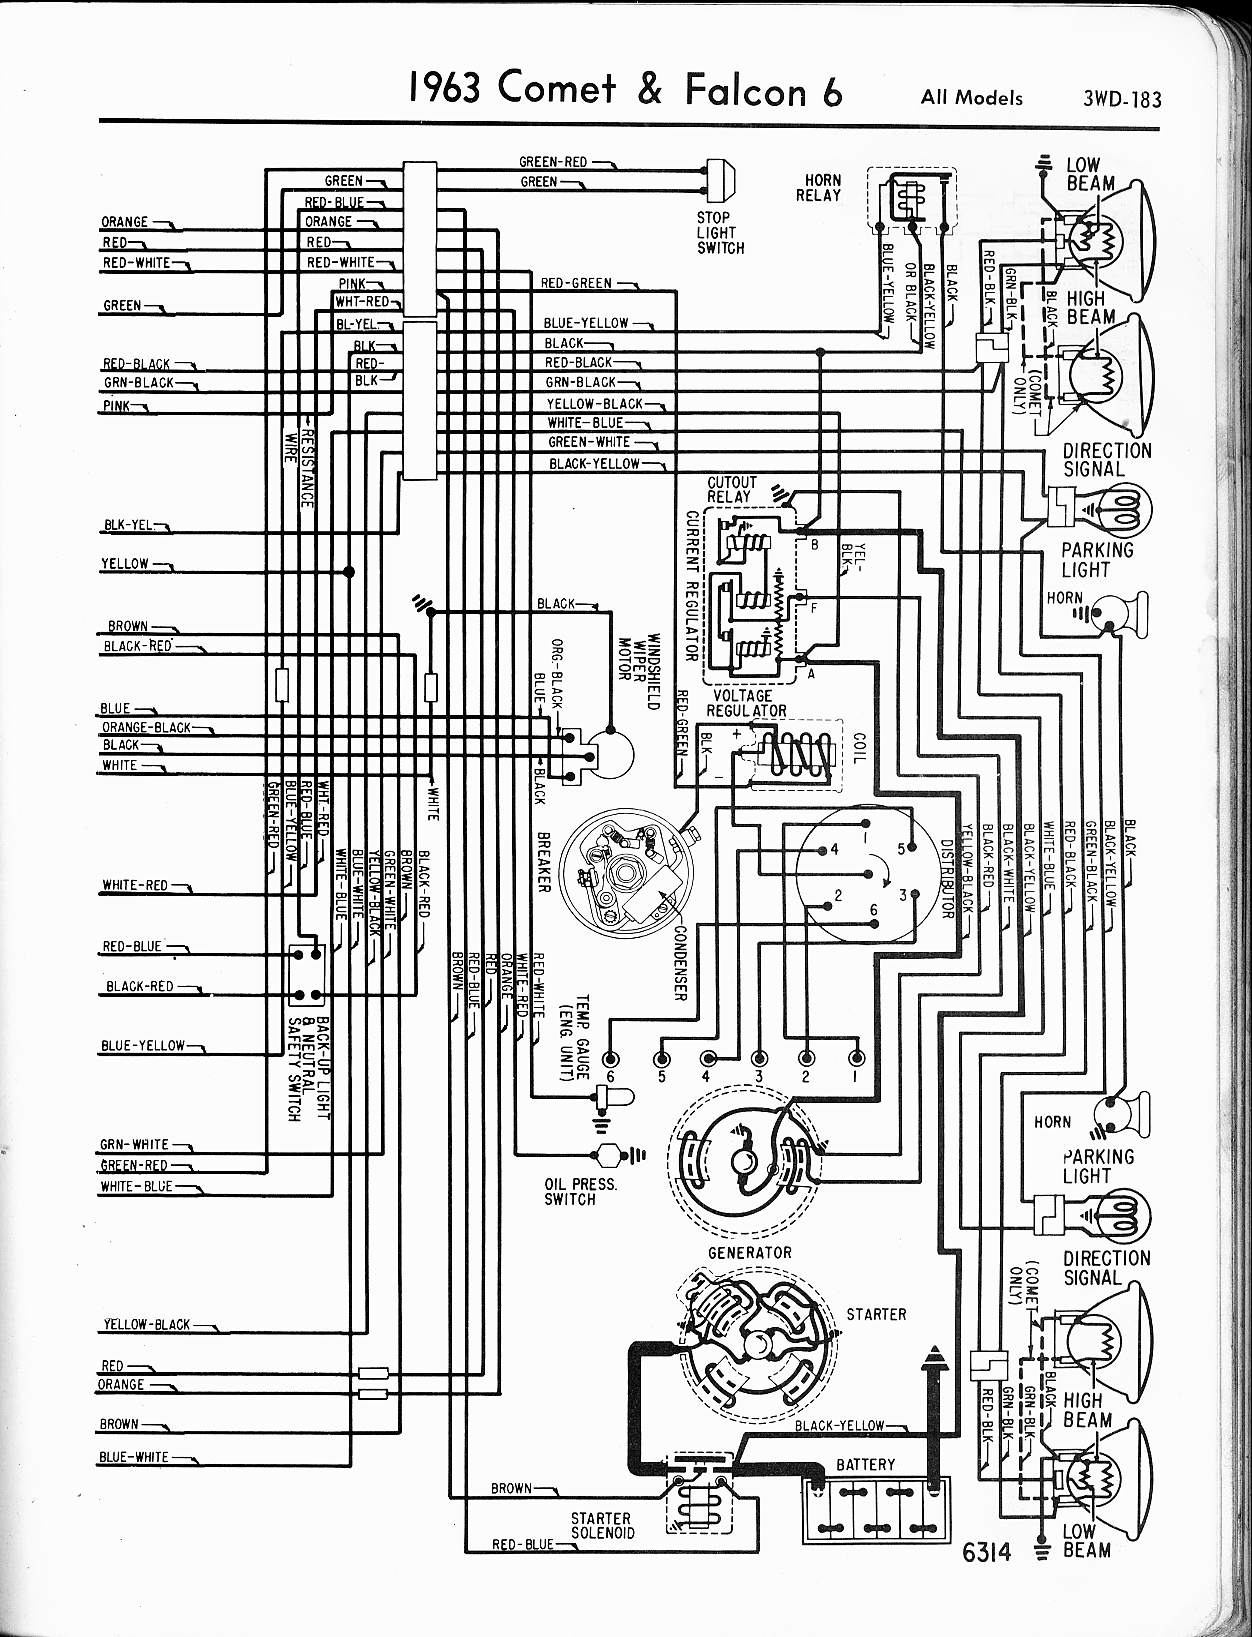 1957 ford ranchero wiring schematic wiring diagram operations 1957 ford ranchero wiring schematic wiring diagrams value 1957 ford ranchero wiring schematic